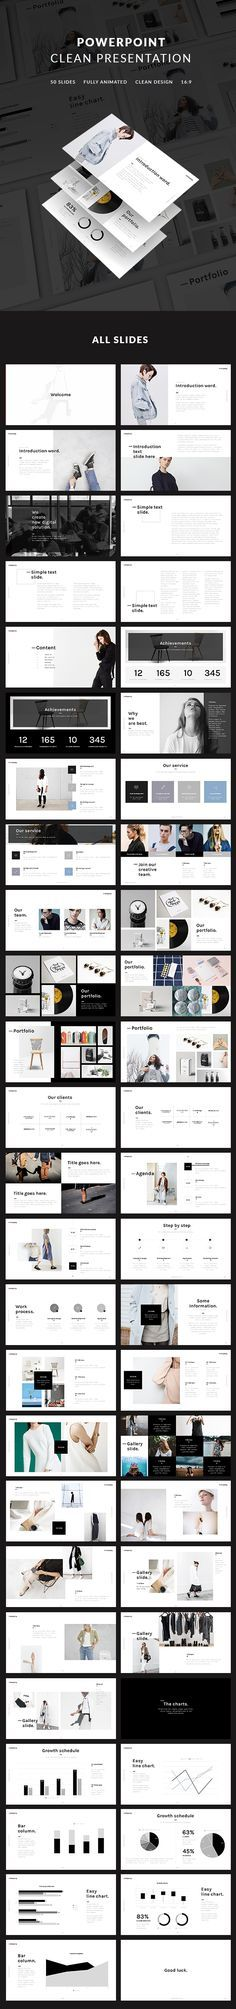 17 best ideas about poster presentation template on